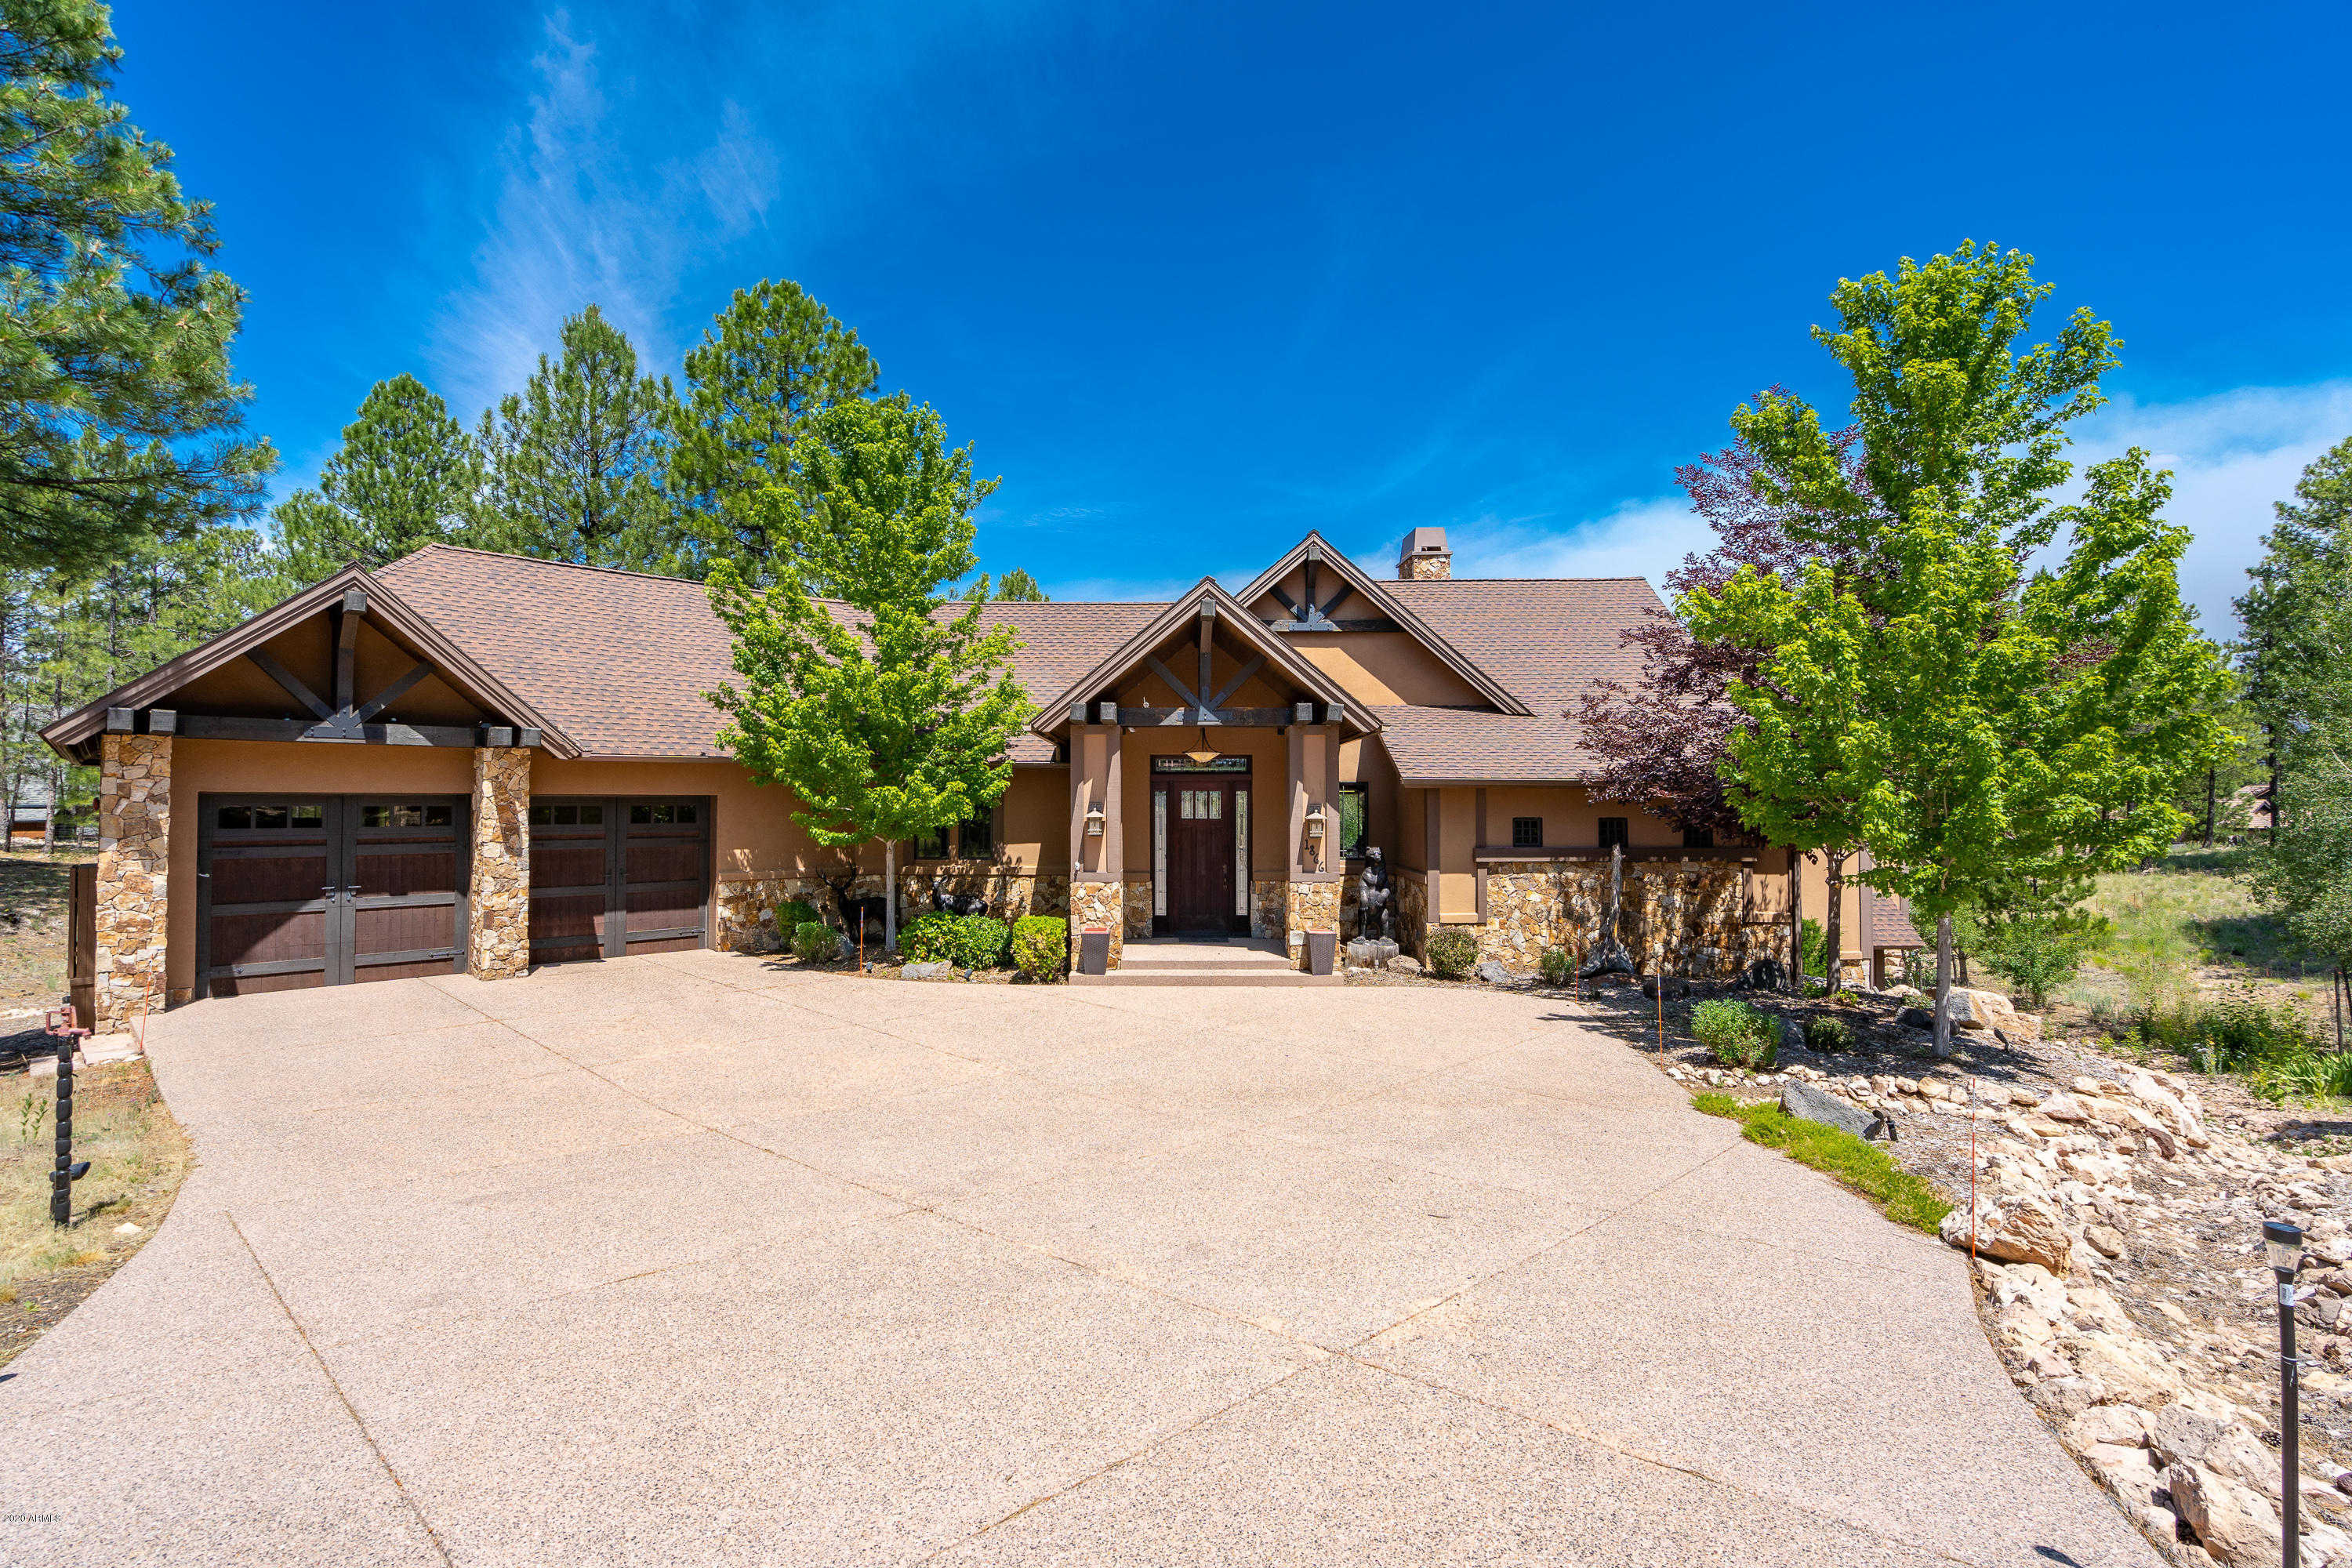 $1,495,000 - 3Br/4Ba - Home for Sale in Estates At Pine Canyon, Flagstaff